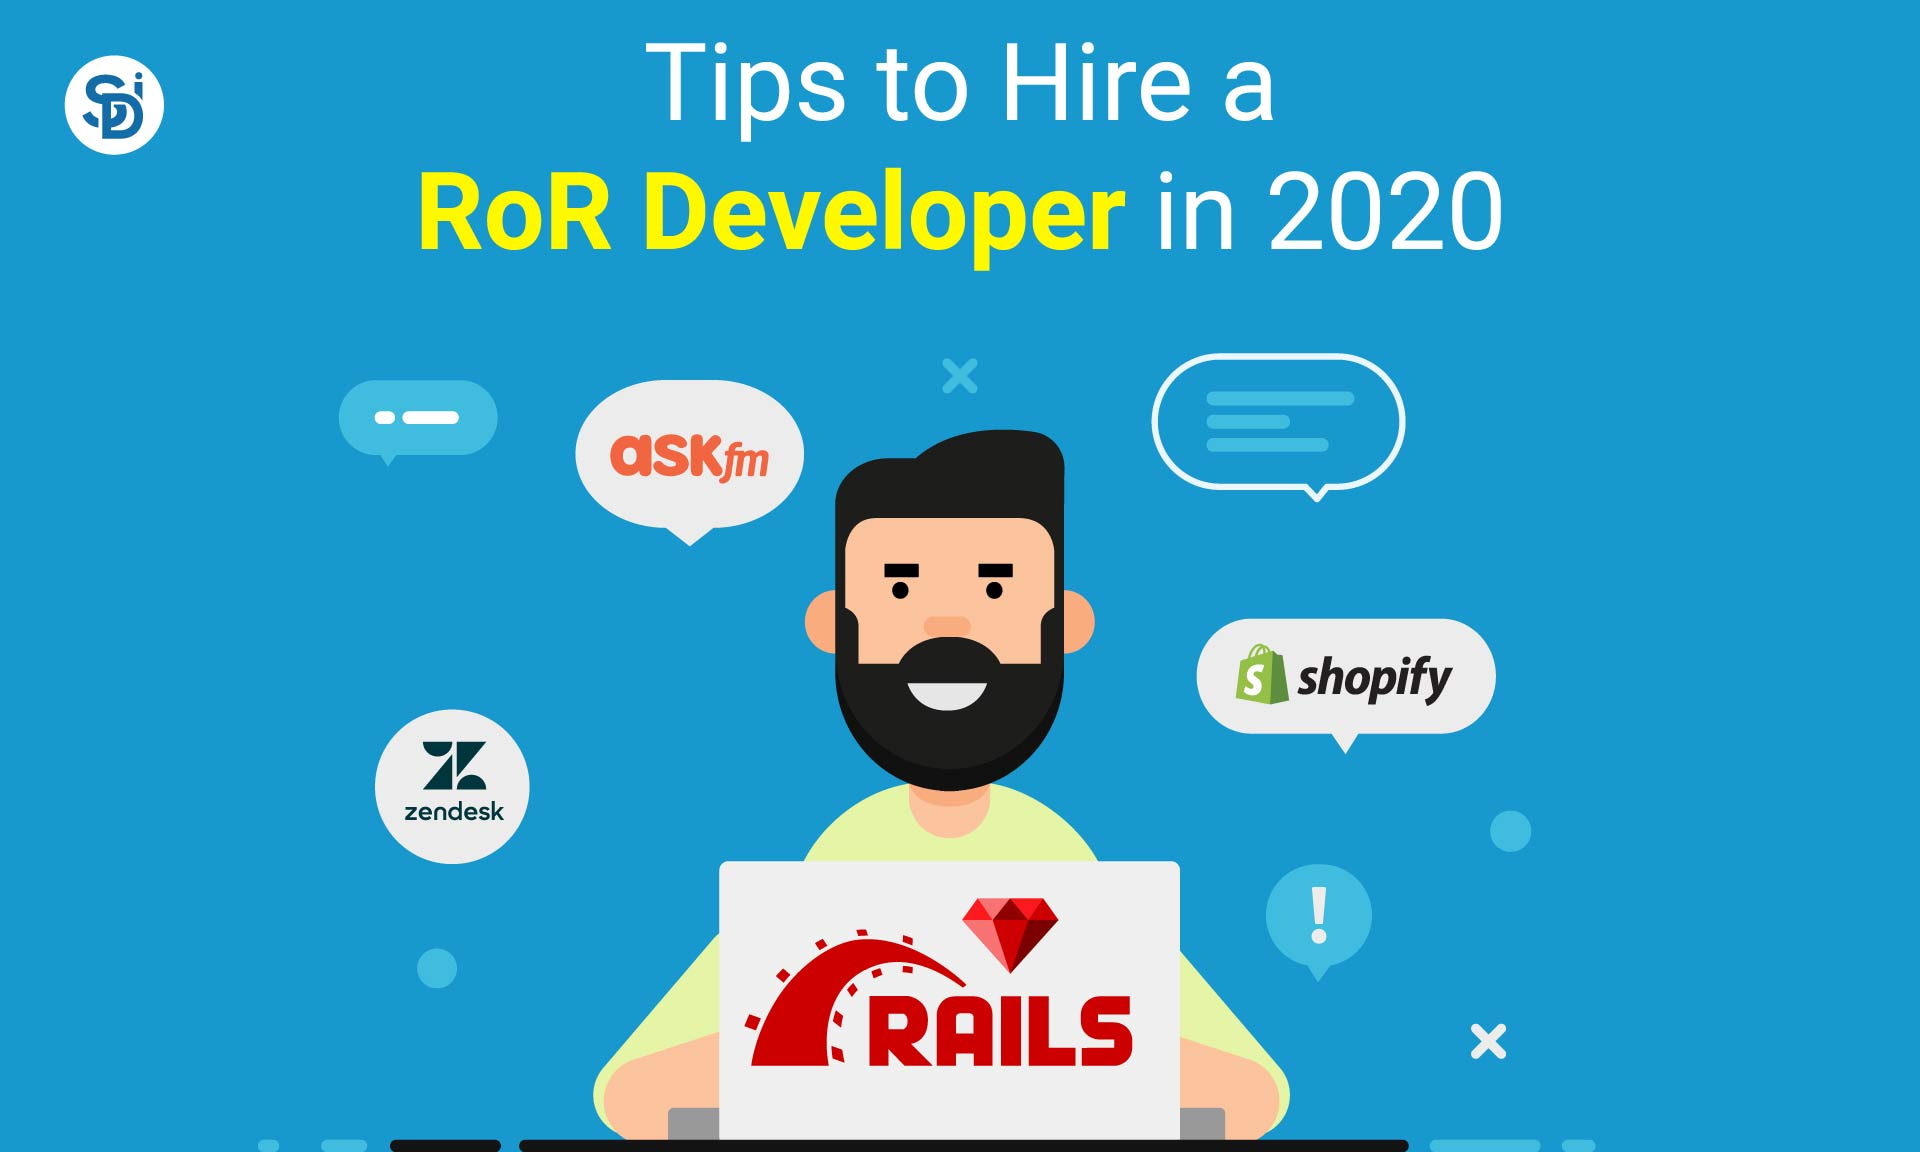 Tips to Hire RoR Developer